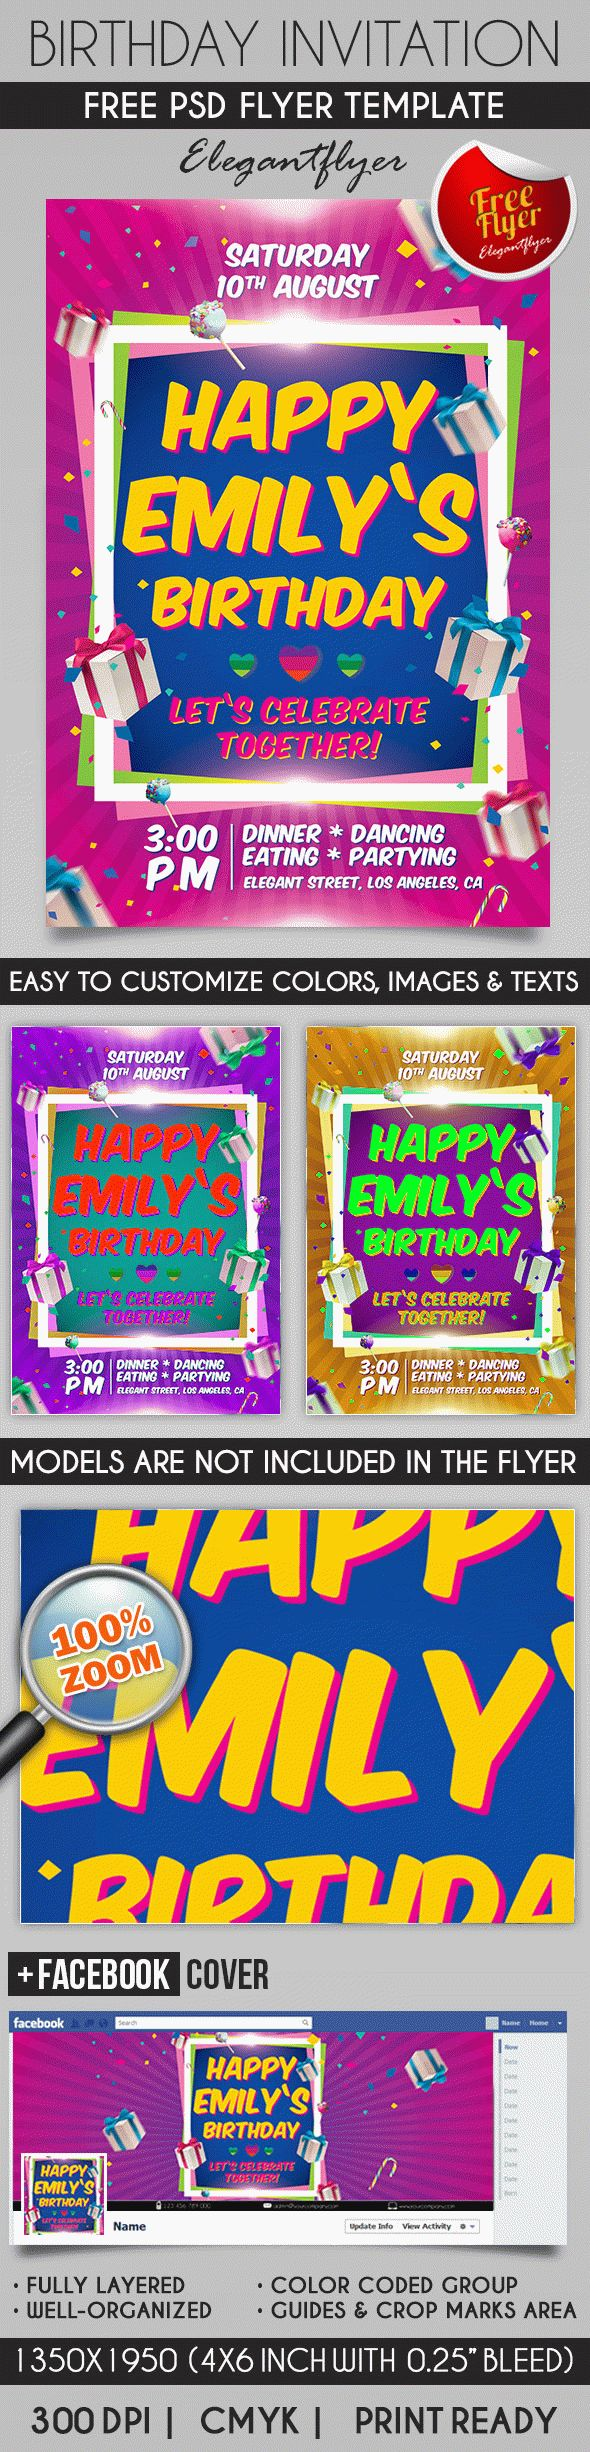 Birthday party invitation flyer psd template pinterest psd birthday party invitation flyer psd template facebook cover stopboris Images